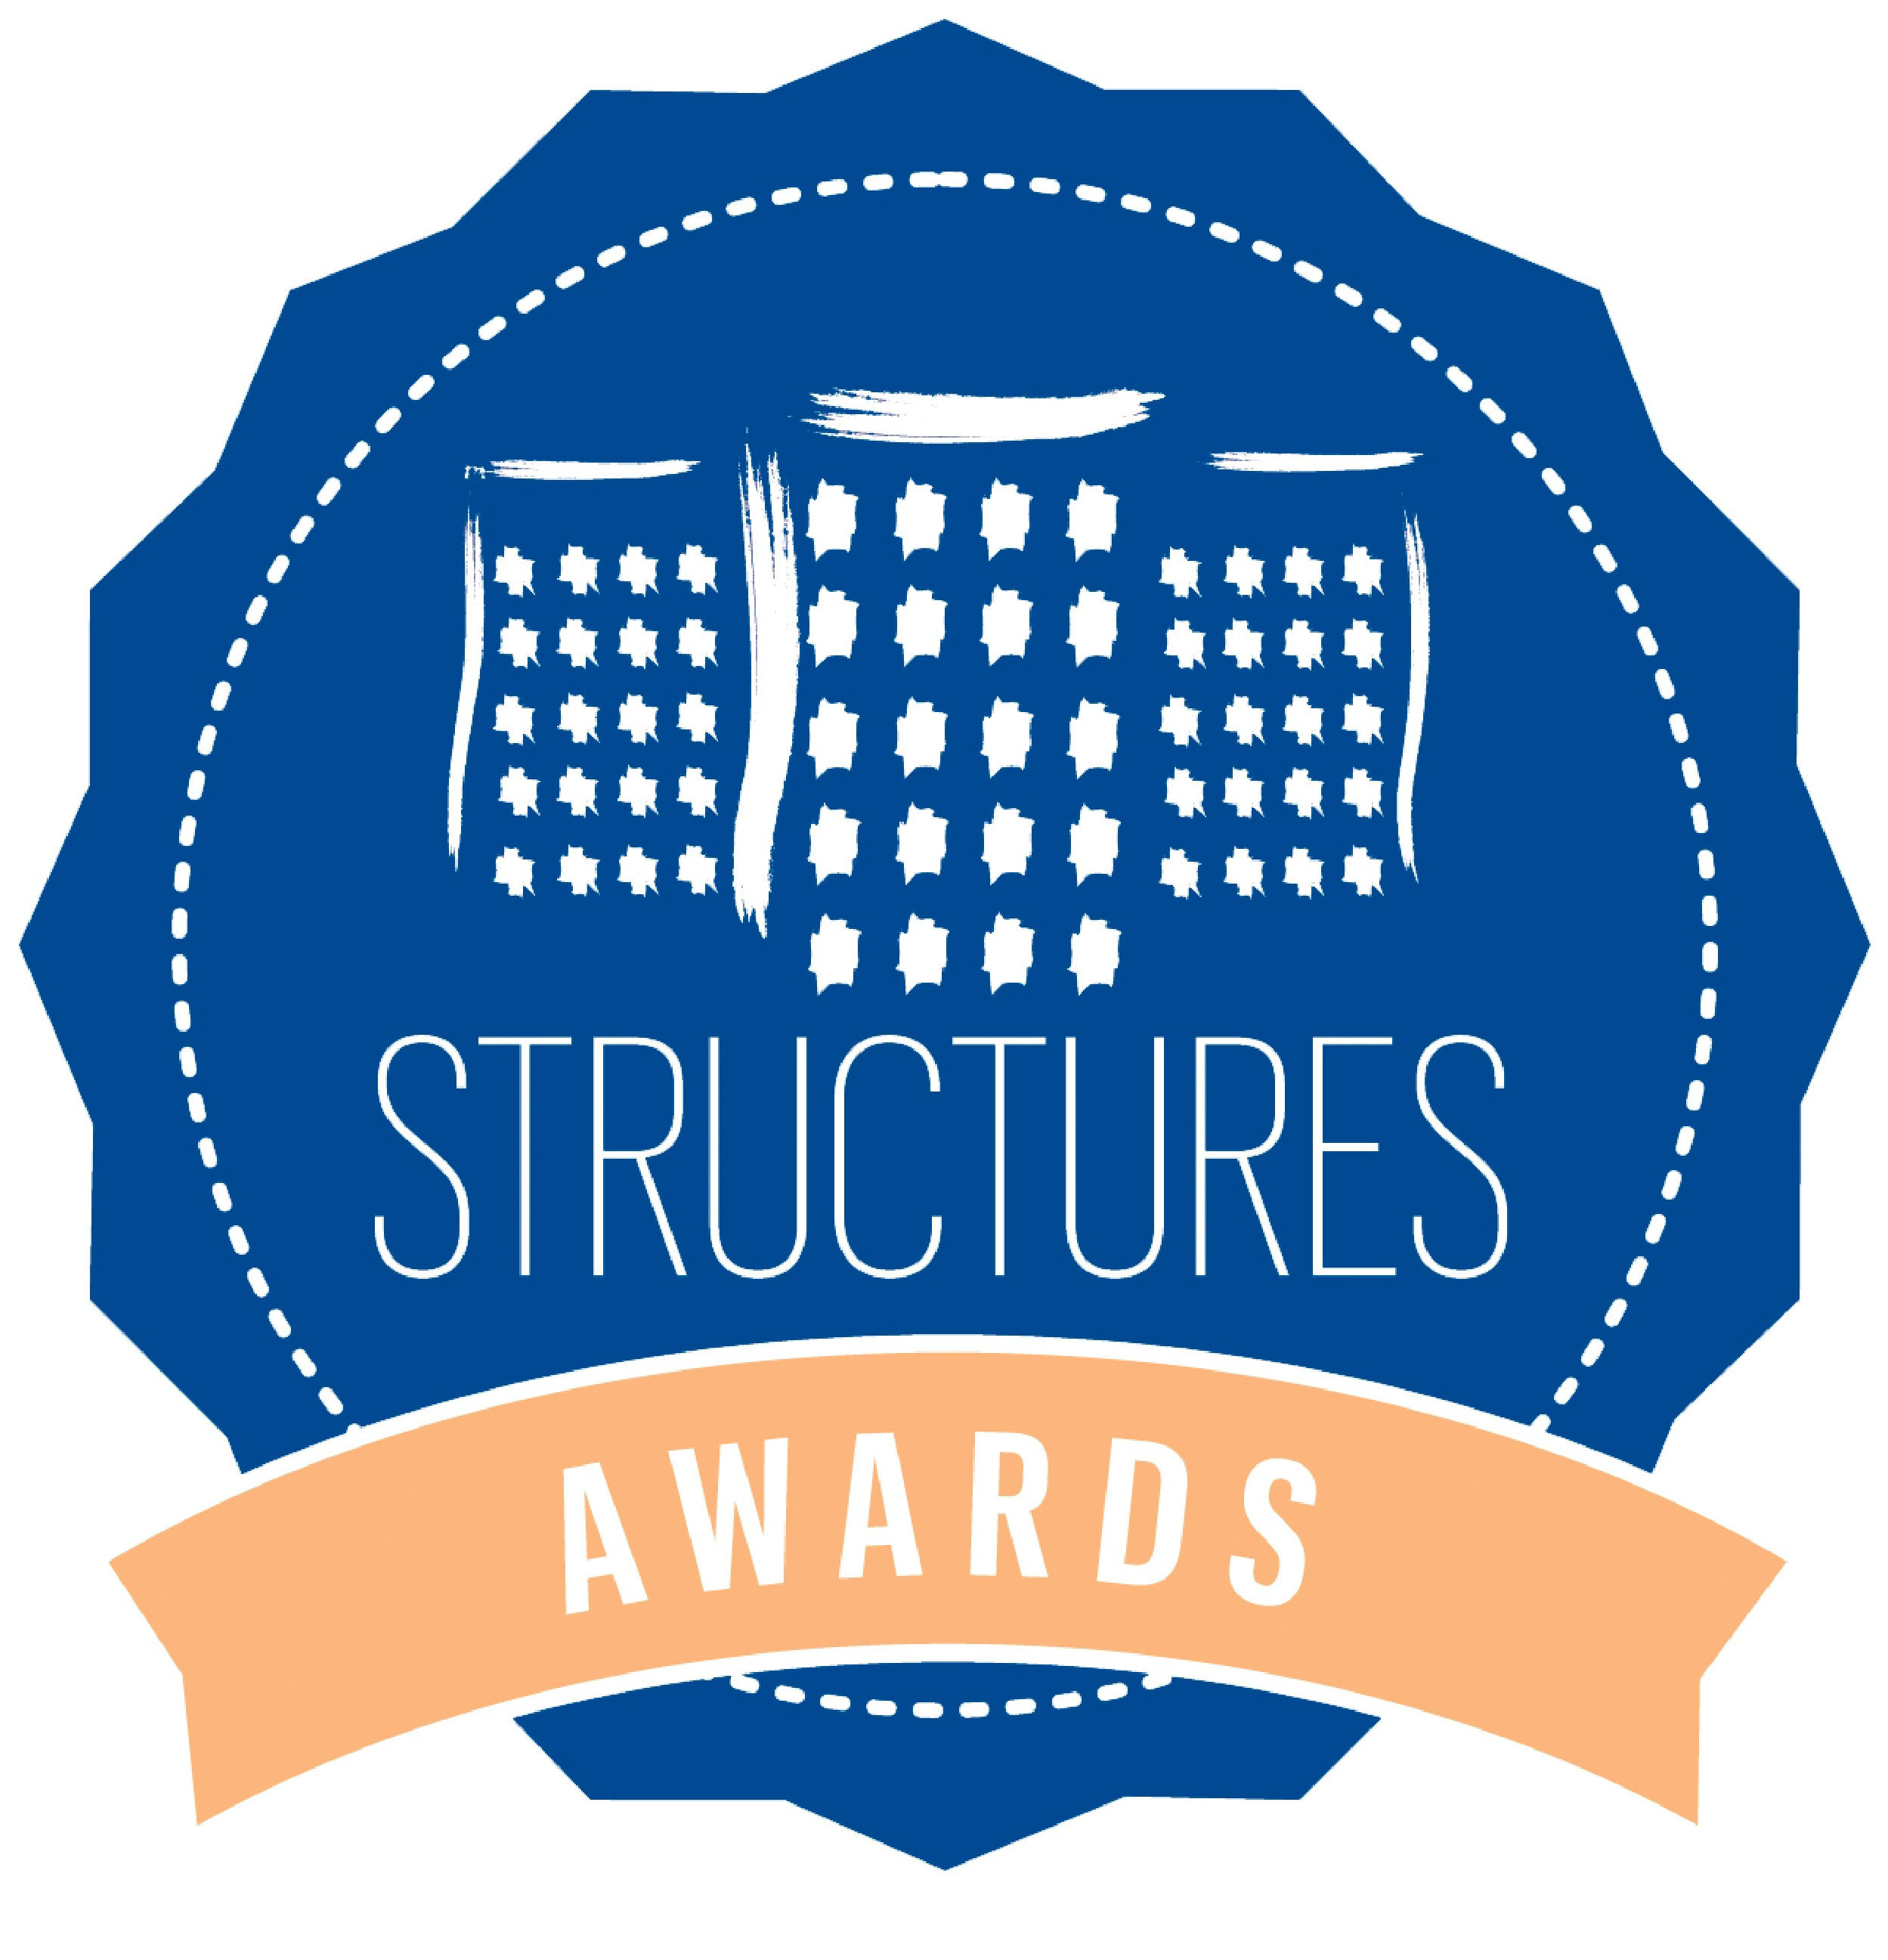 Award: 2017 Silicon Valley Business Journal Structures Awards: Best Reuse/Rehab Project: 380 N. Pastoria